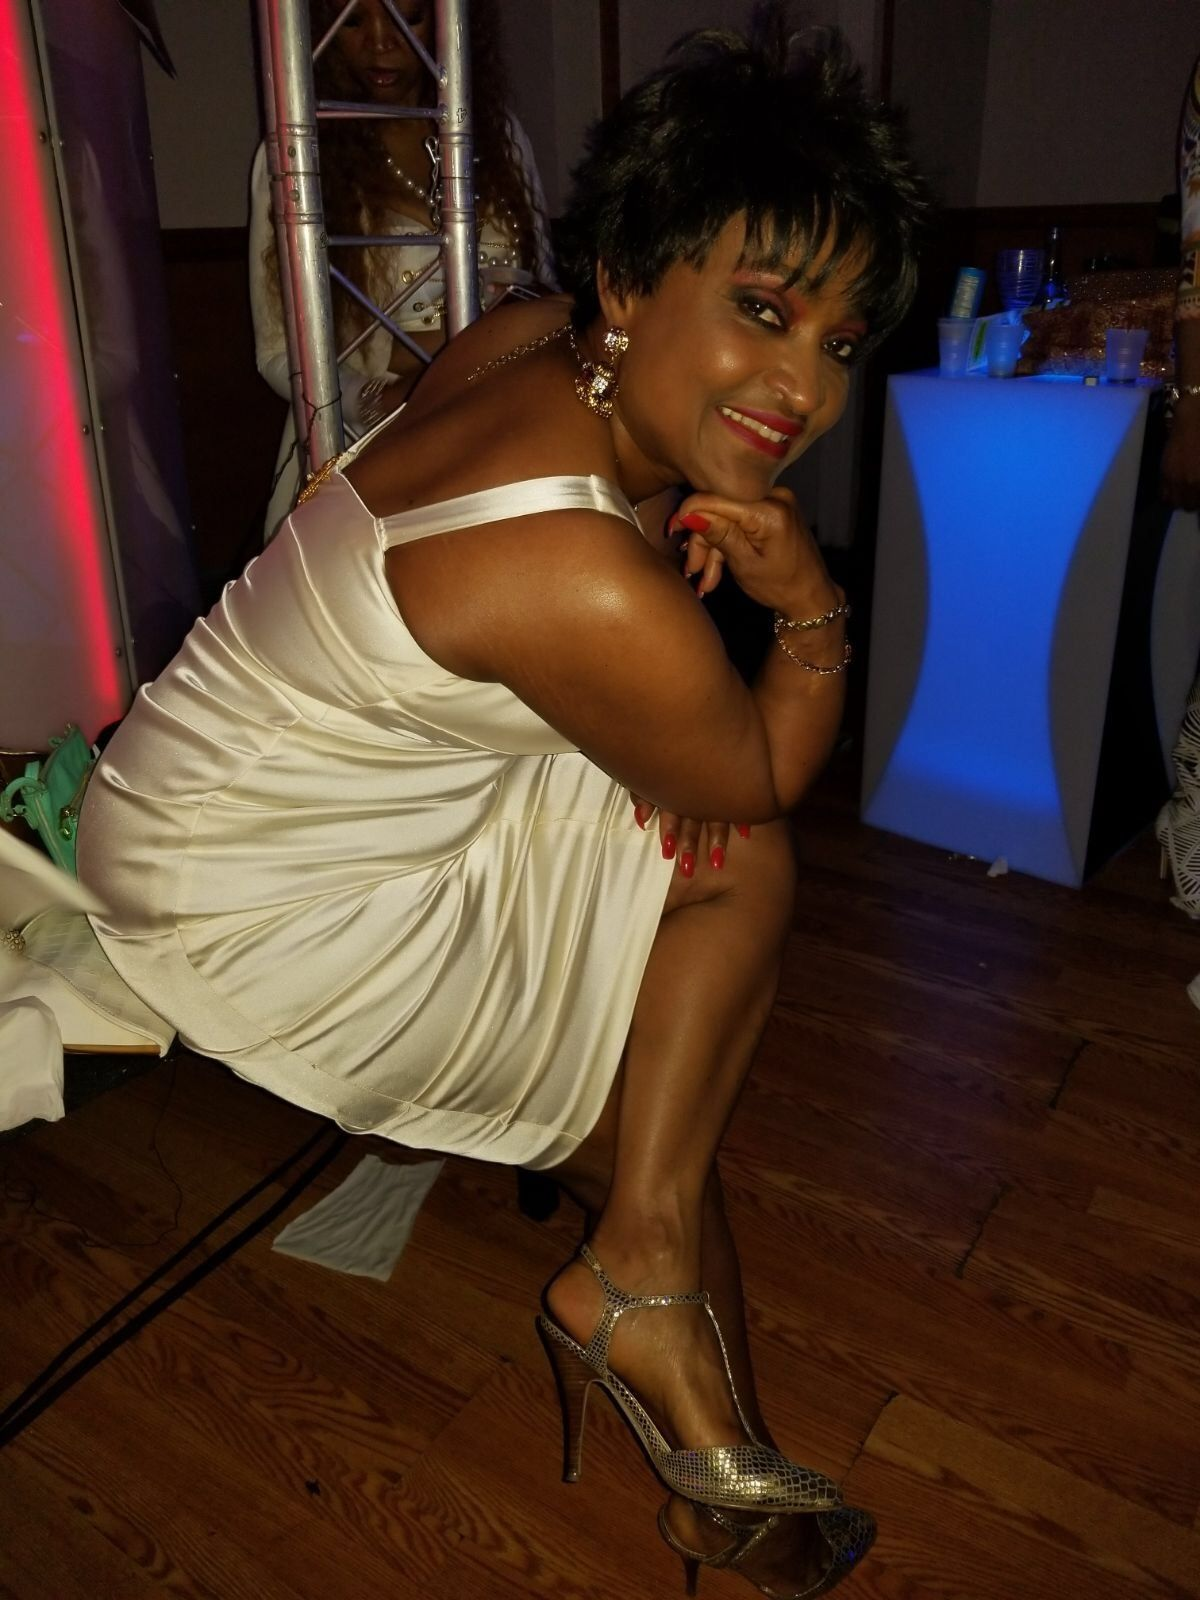 lenore singles over 50 Lds singles online personals and lds dating for lds singles  handsome lds men ages 50 and up  this is my first foray over here,.